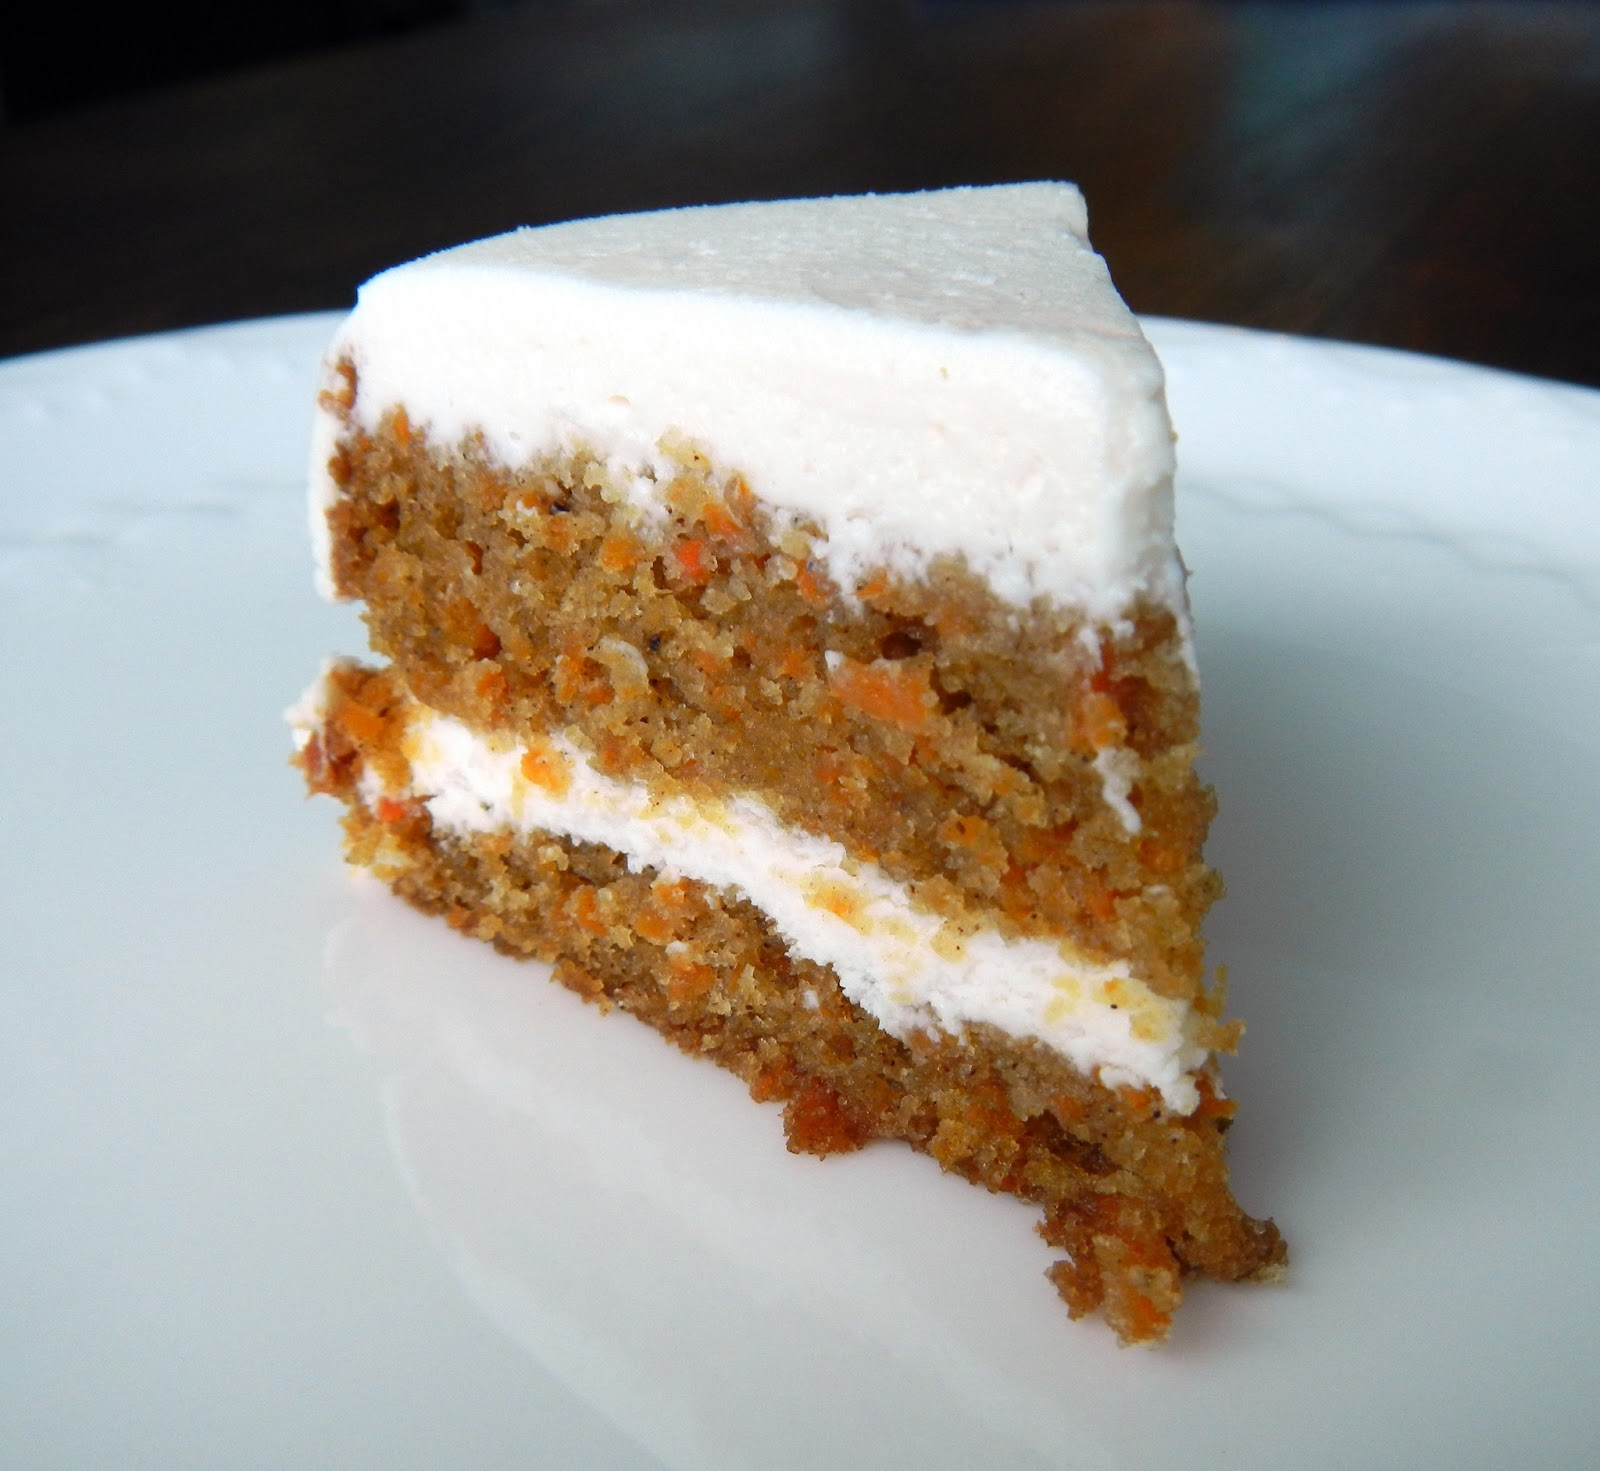 My Food Affair: Carrot Cake